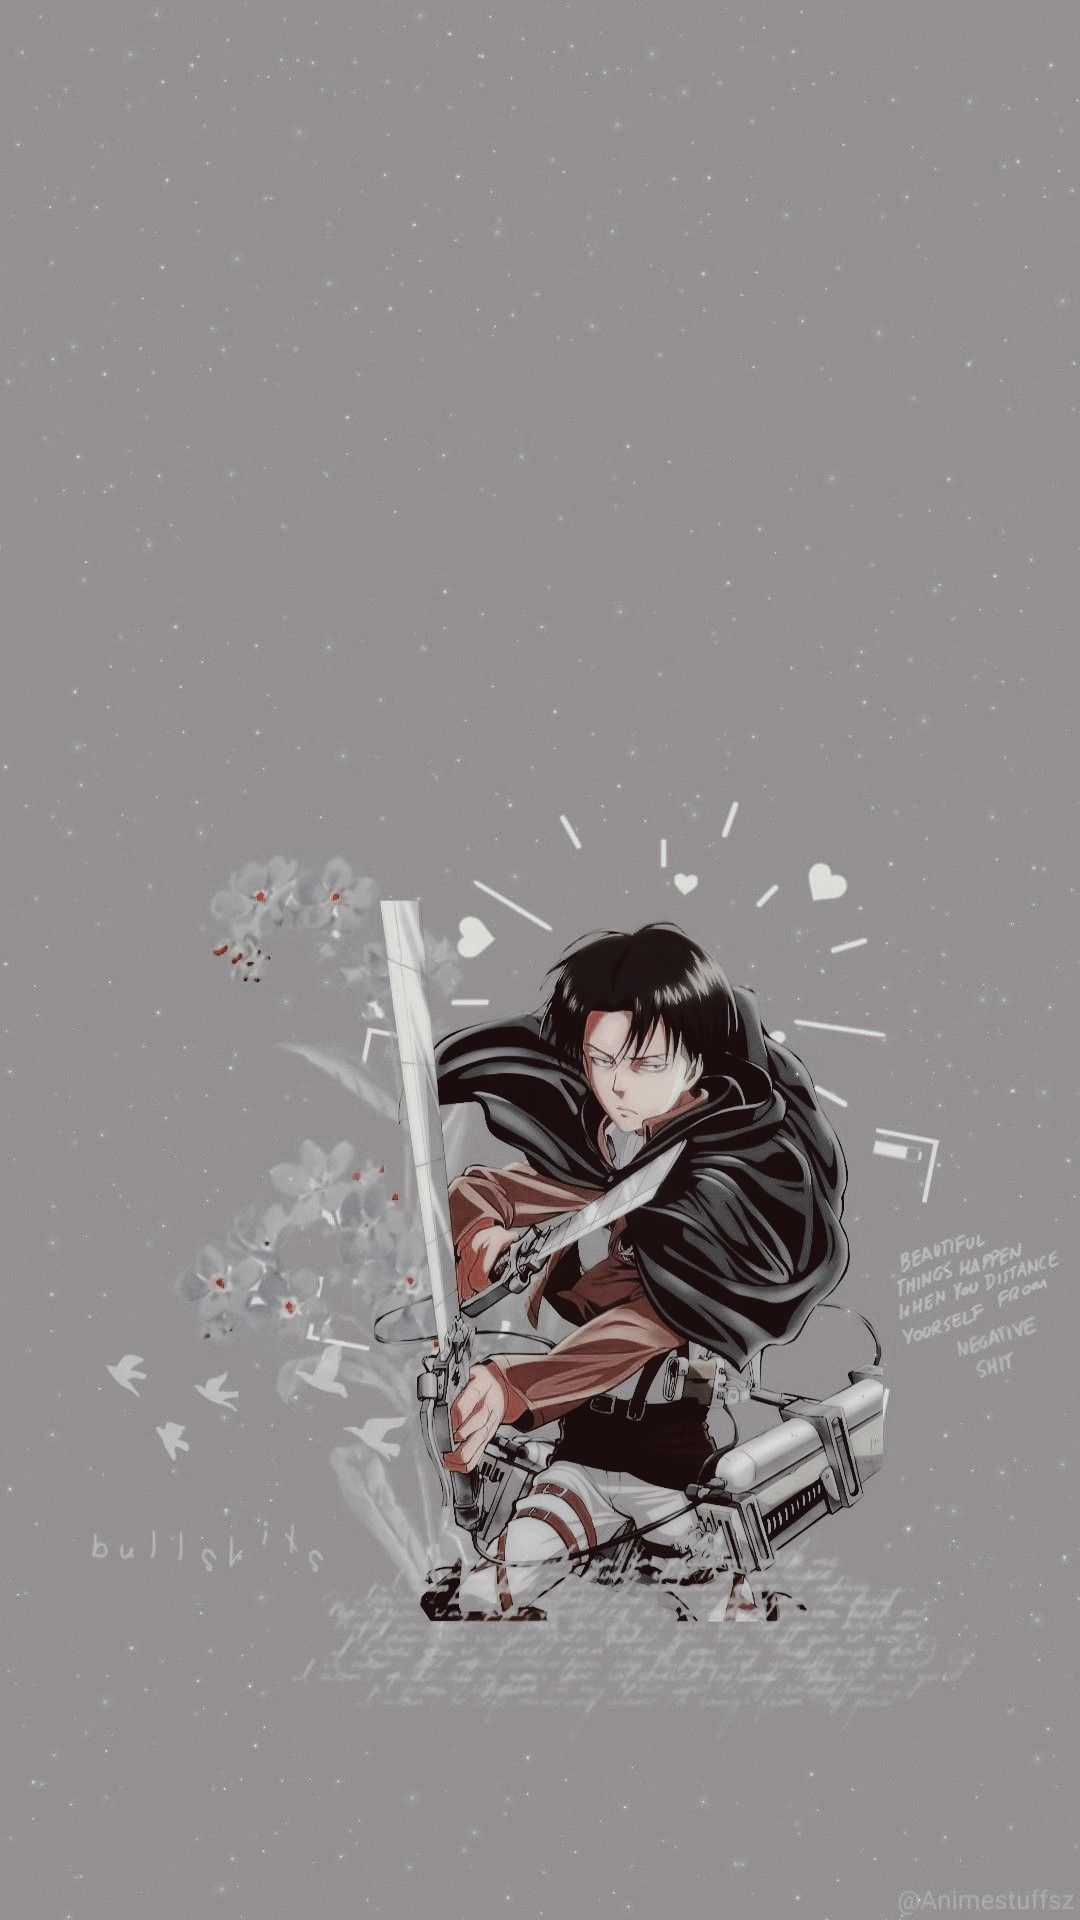 Aesthetic Attack On Titan Wallpapers Top Free Aesthetic Attack On Titan Backgrounds Wallpaperaccess